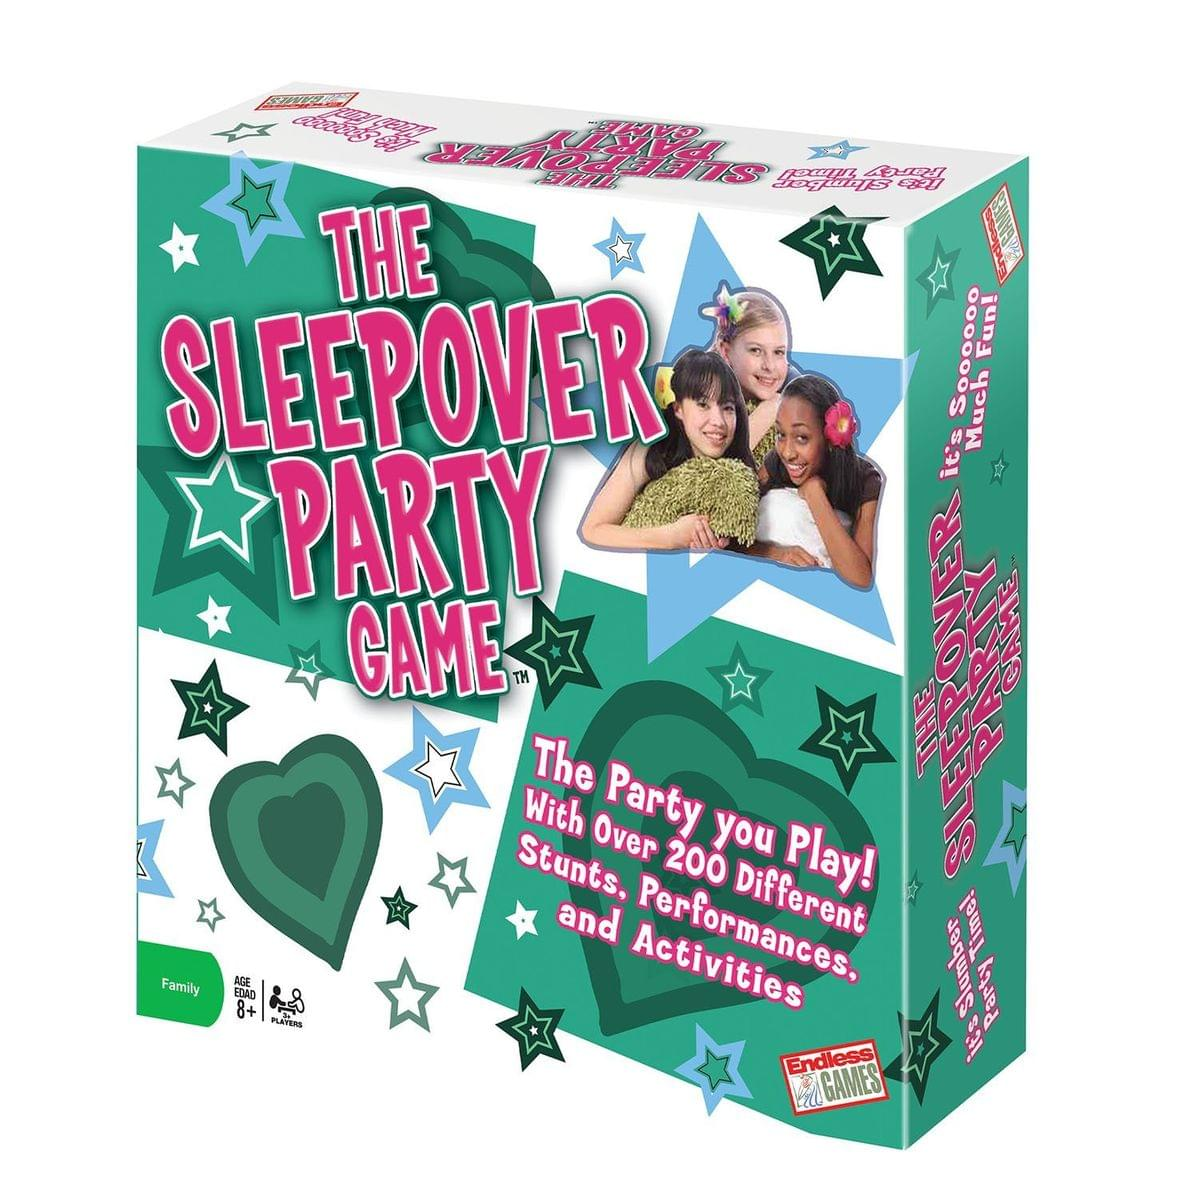 The Sleepover Party Card Game